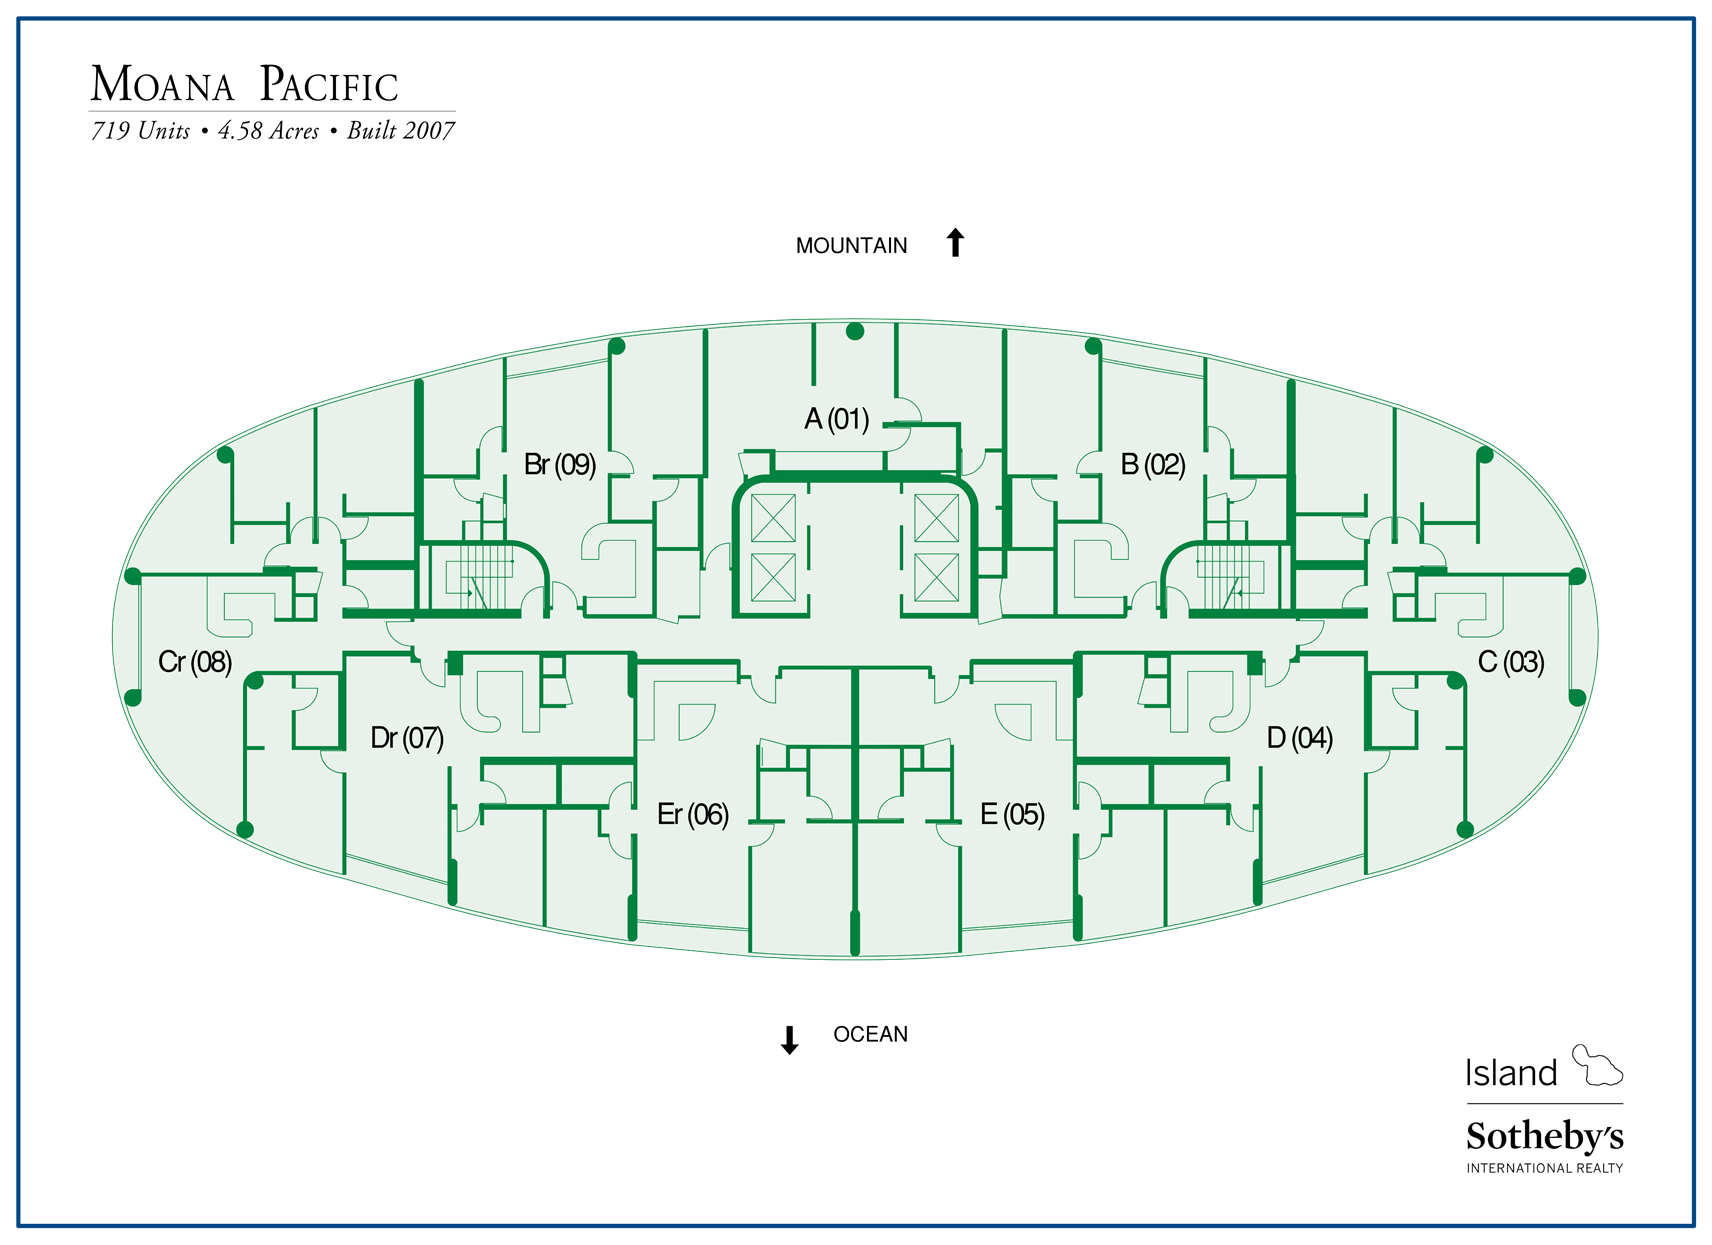 Moana Pacific Condo Map